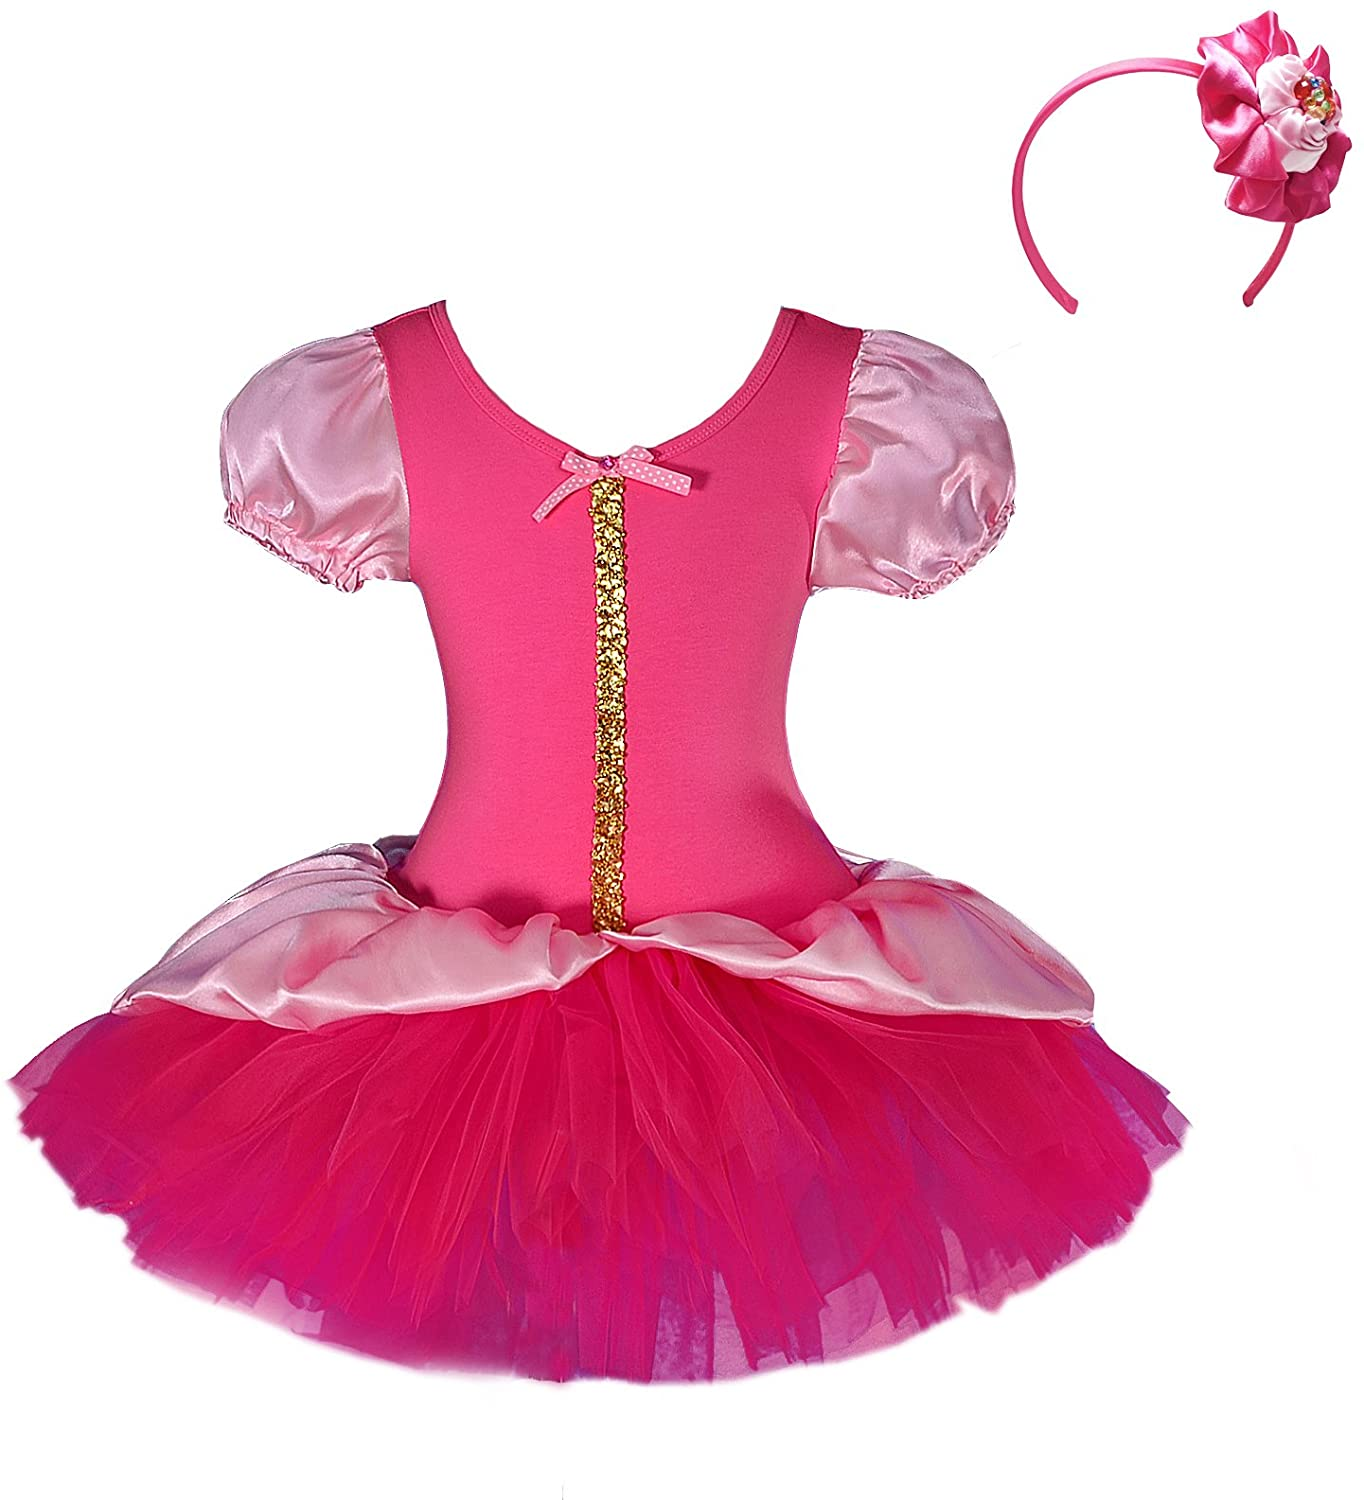 Dressy Daisy Girls Princess Sequin Fairy Costume Fancy Dress + Headband Ballet Tutu Dancewear Size 6-8 Hot Pink